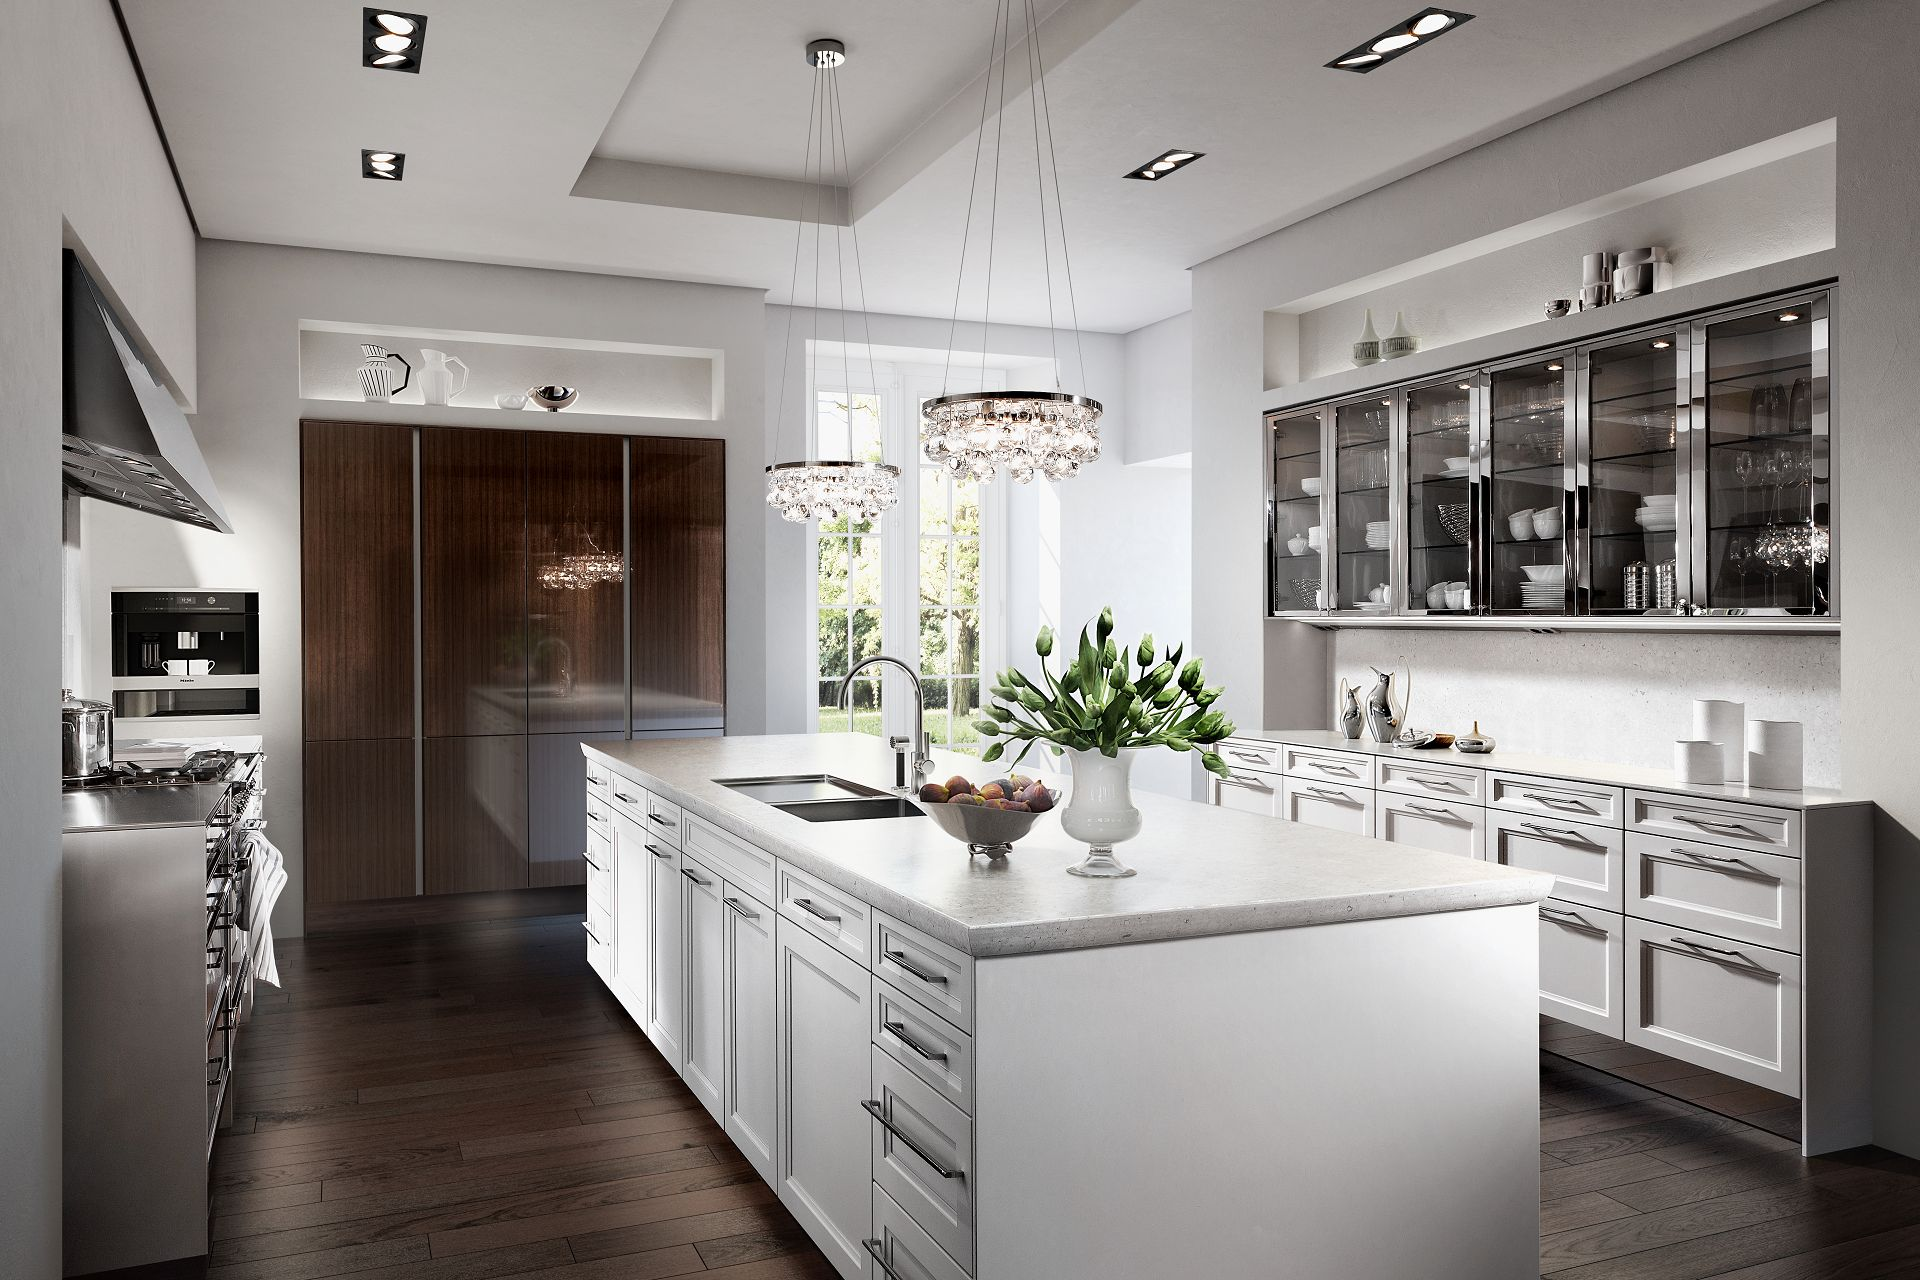 SieMatic Classic BeauxArts S2 in lotus white and nickel with kitchen island and faceted door fronts